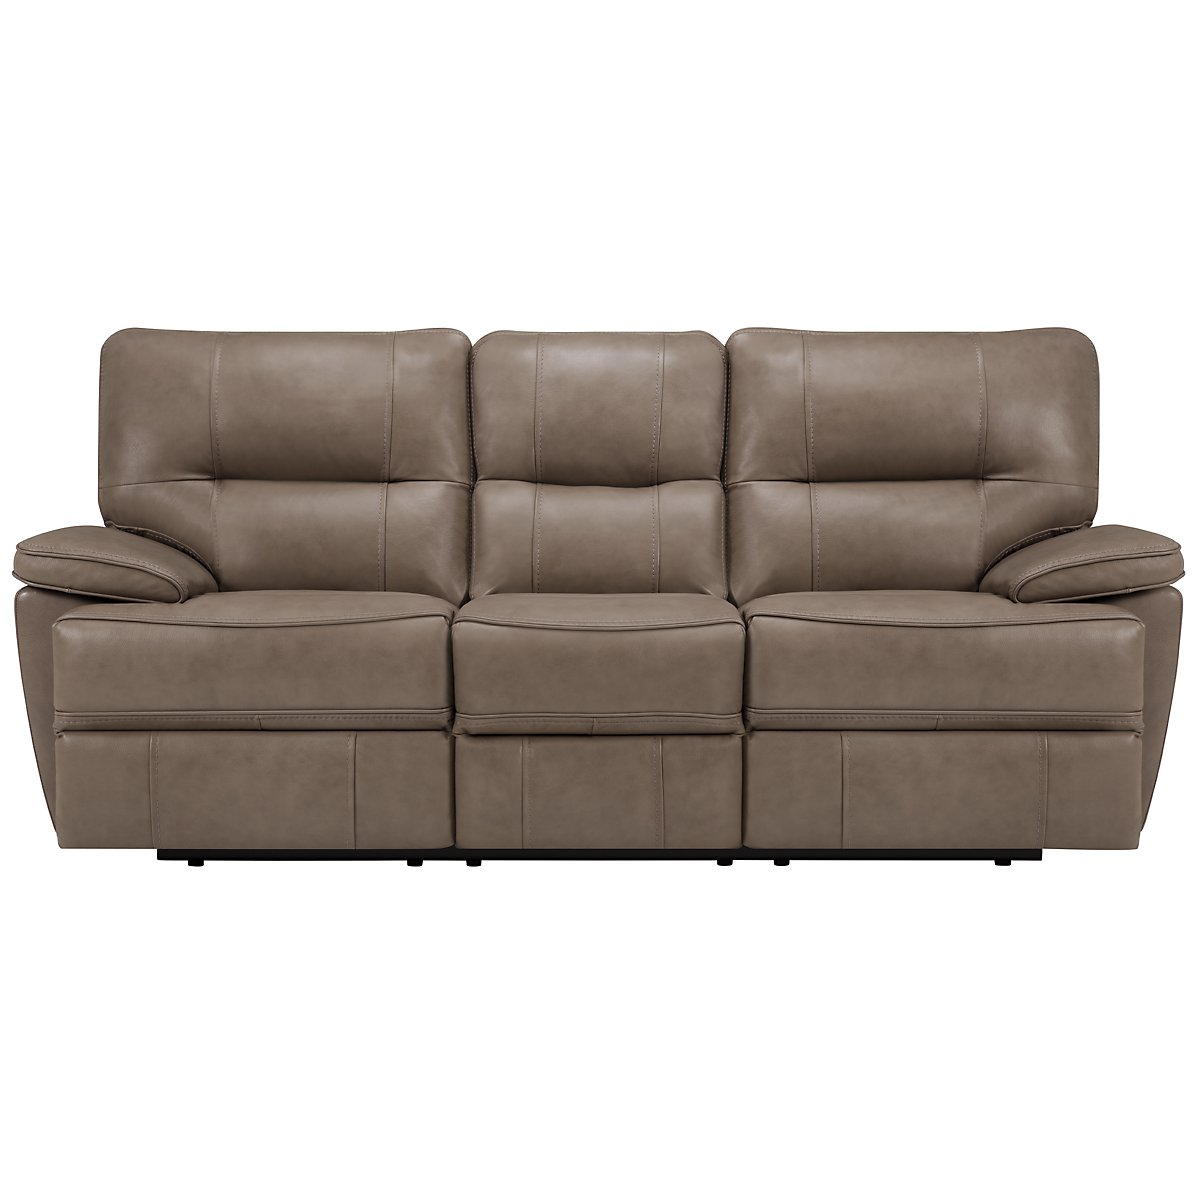 Clint Dk Beige Leather & Vinyl Reclining Sofa